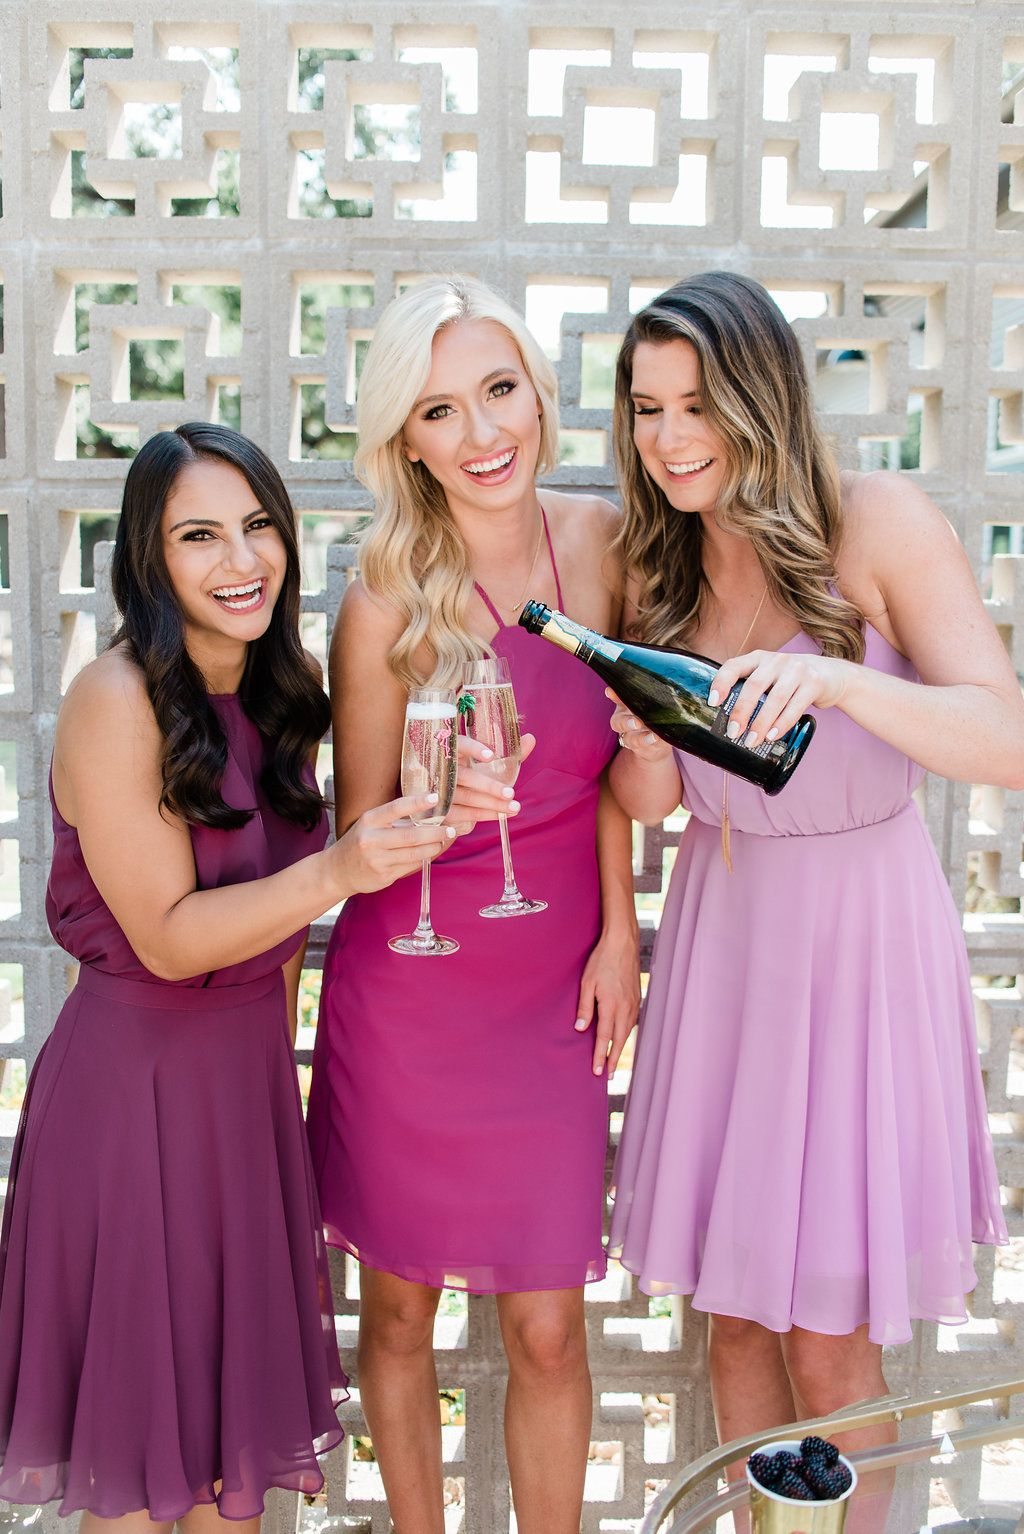 e6948aa0dc2 Mix and Match Revelry Bridesmaid Dresses and Separates. Revelry has a wide  selection of unique